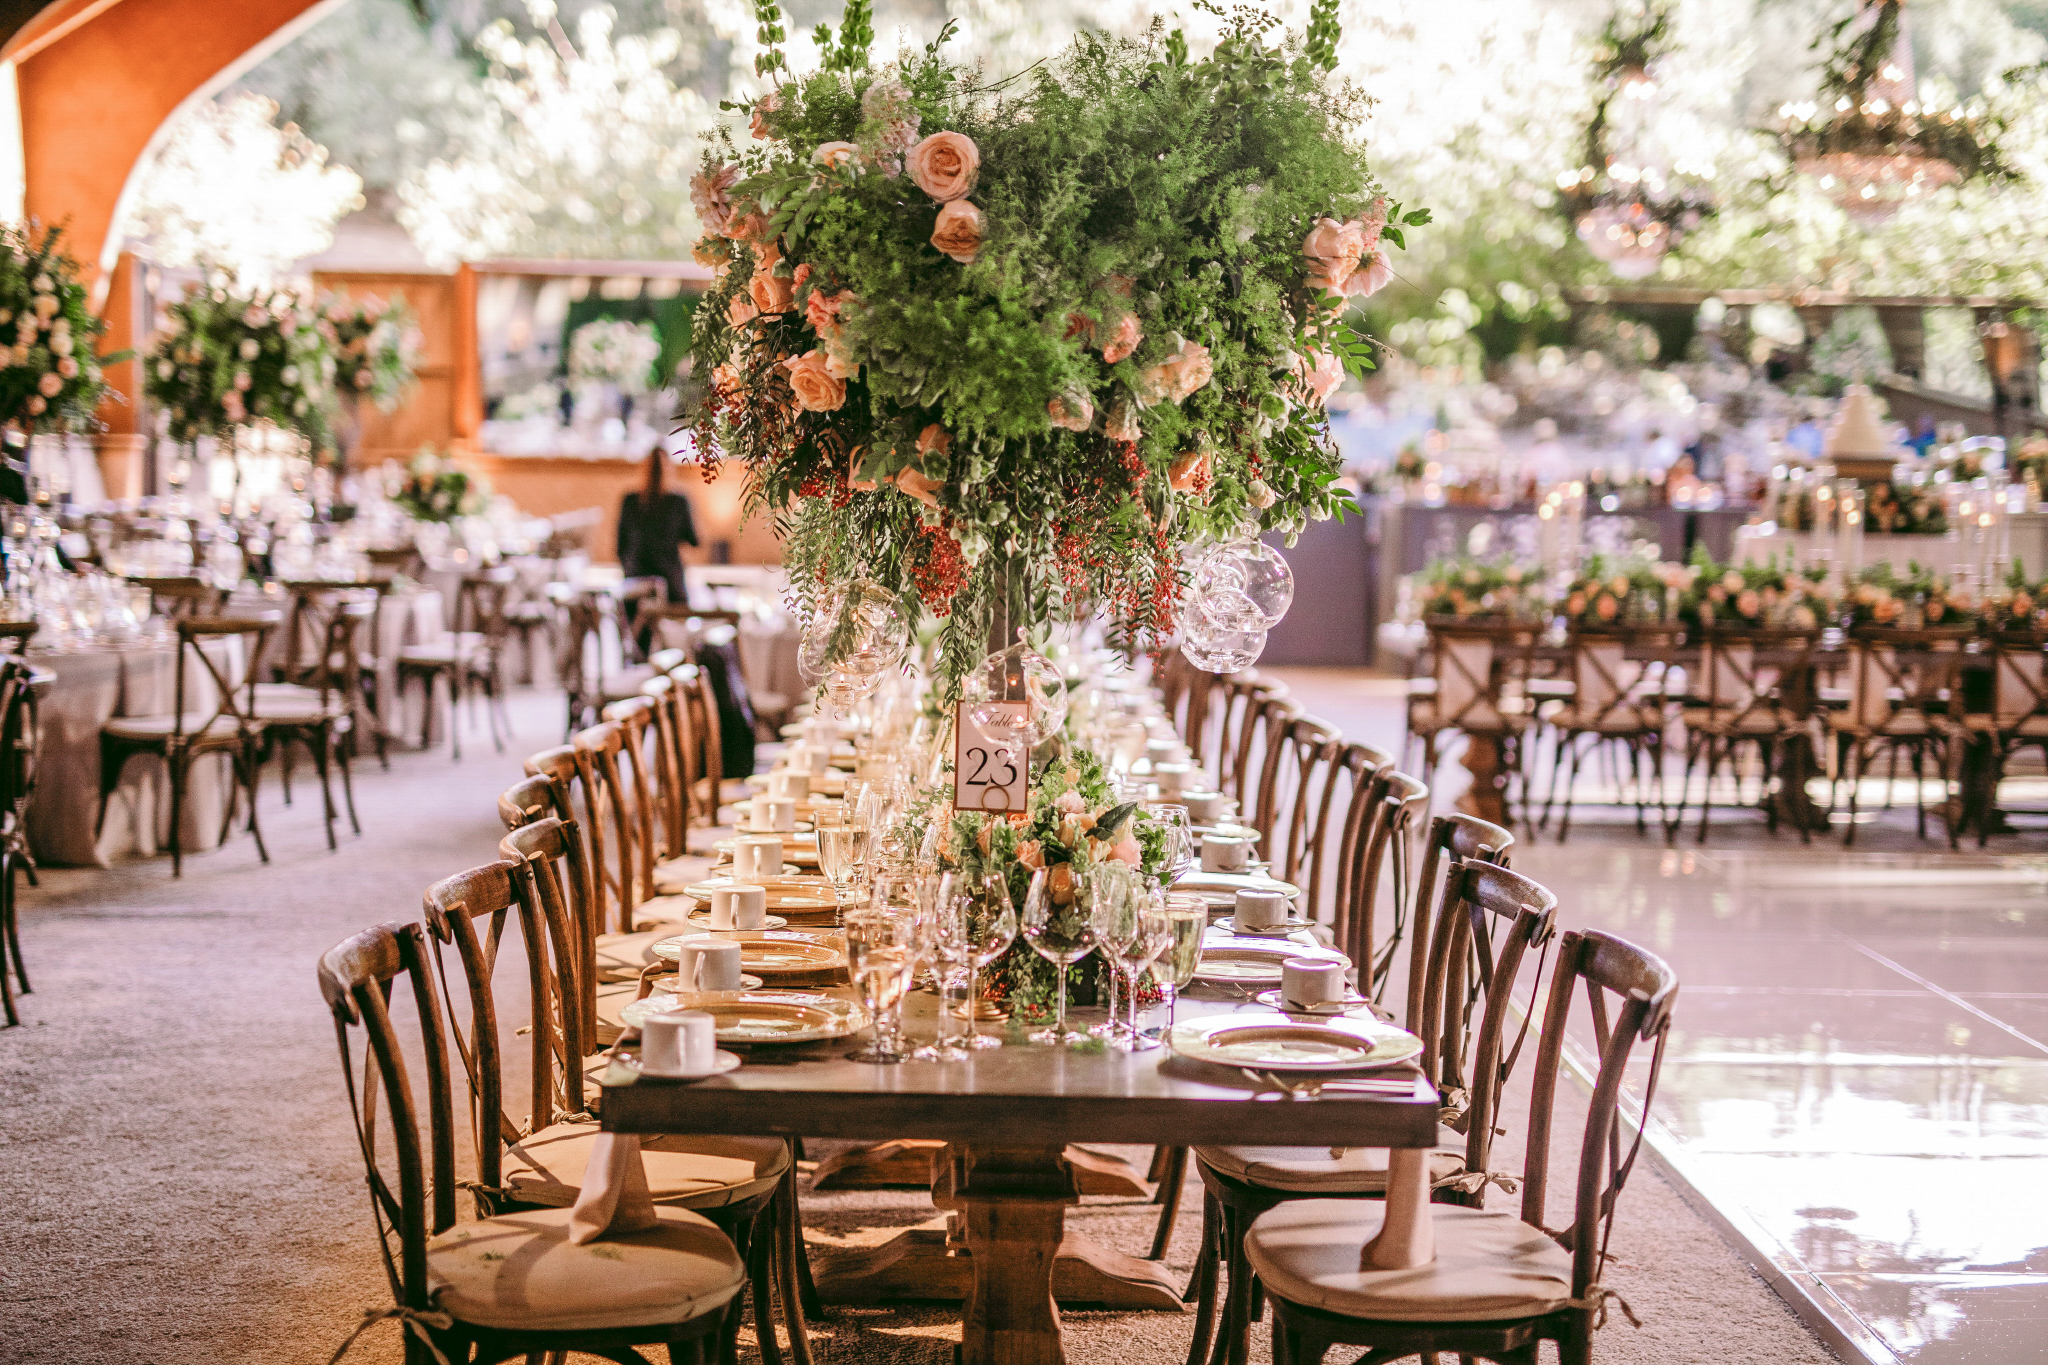 san diego wedding   photographer | table number 23 filled with flower arrangements